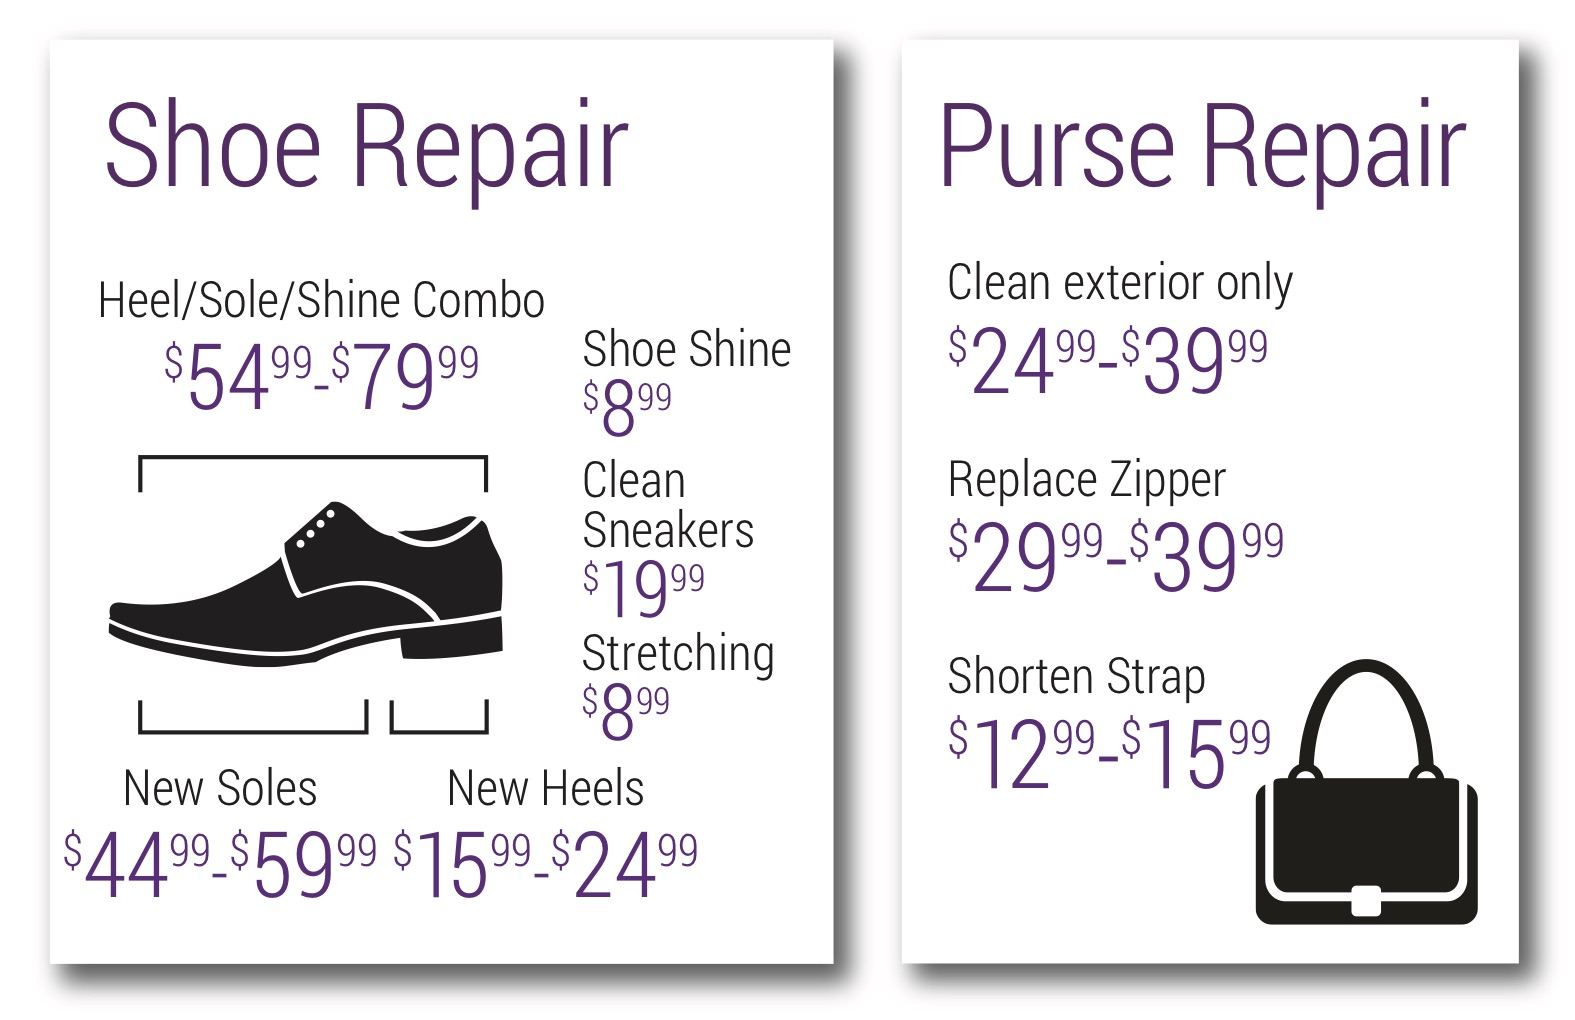 shoe and purse repair image